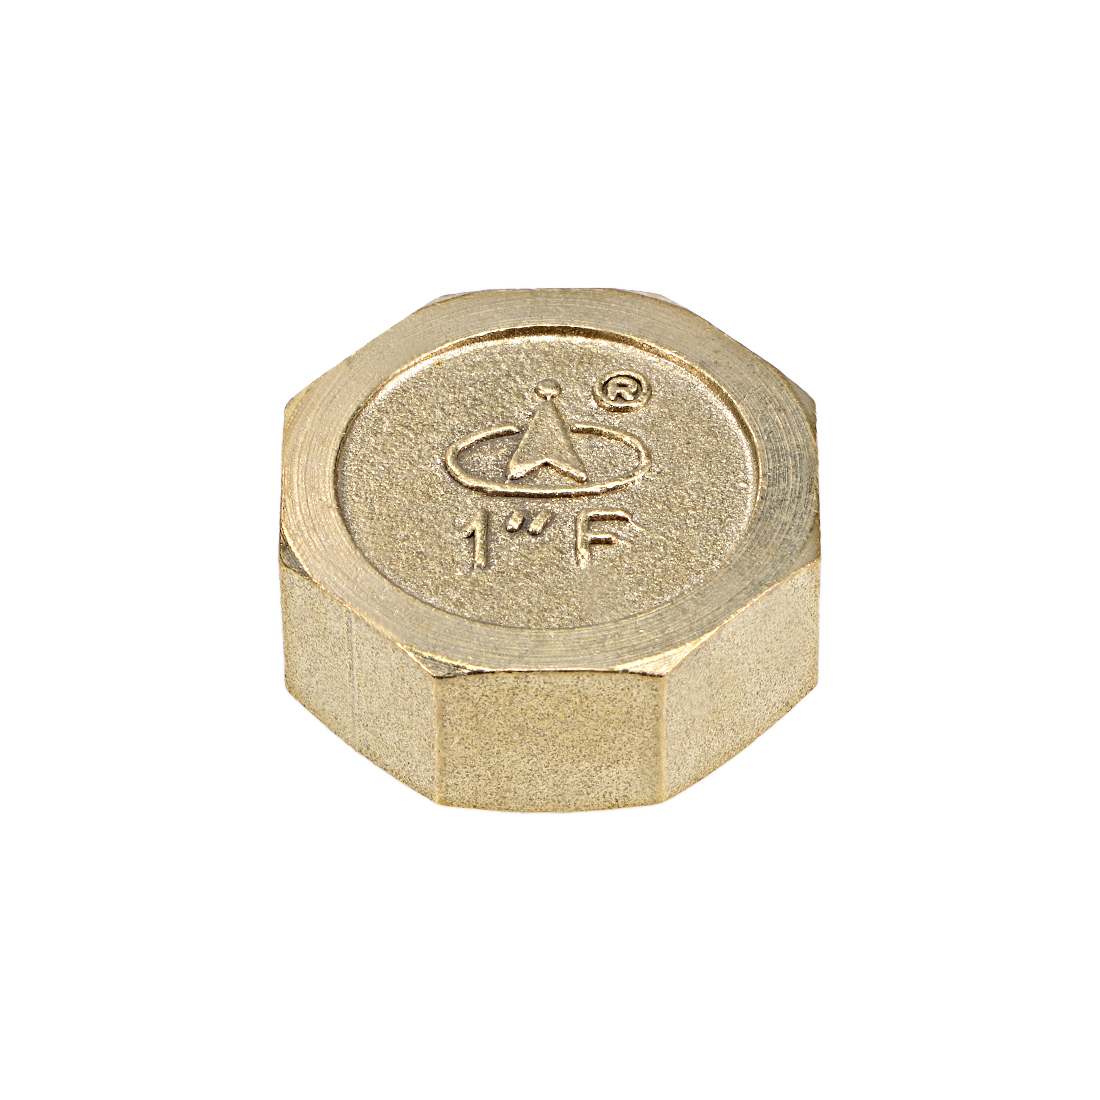 1-Inch Brass Cap PT1 Female Pipe Fitting Hex Compression Stop Valve Connector